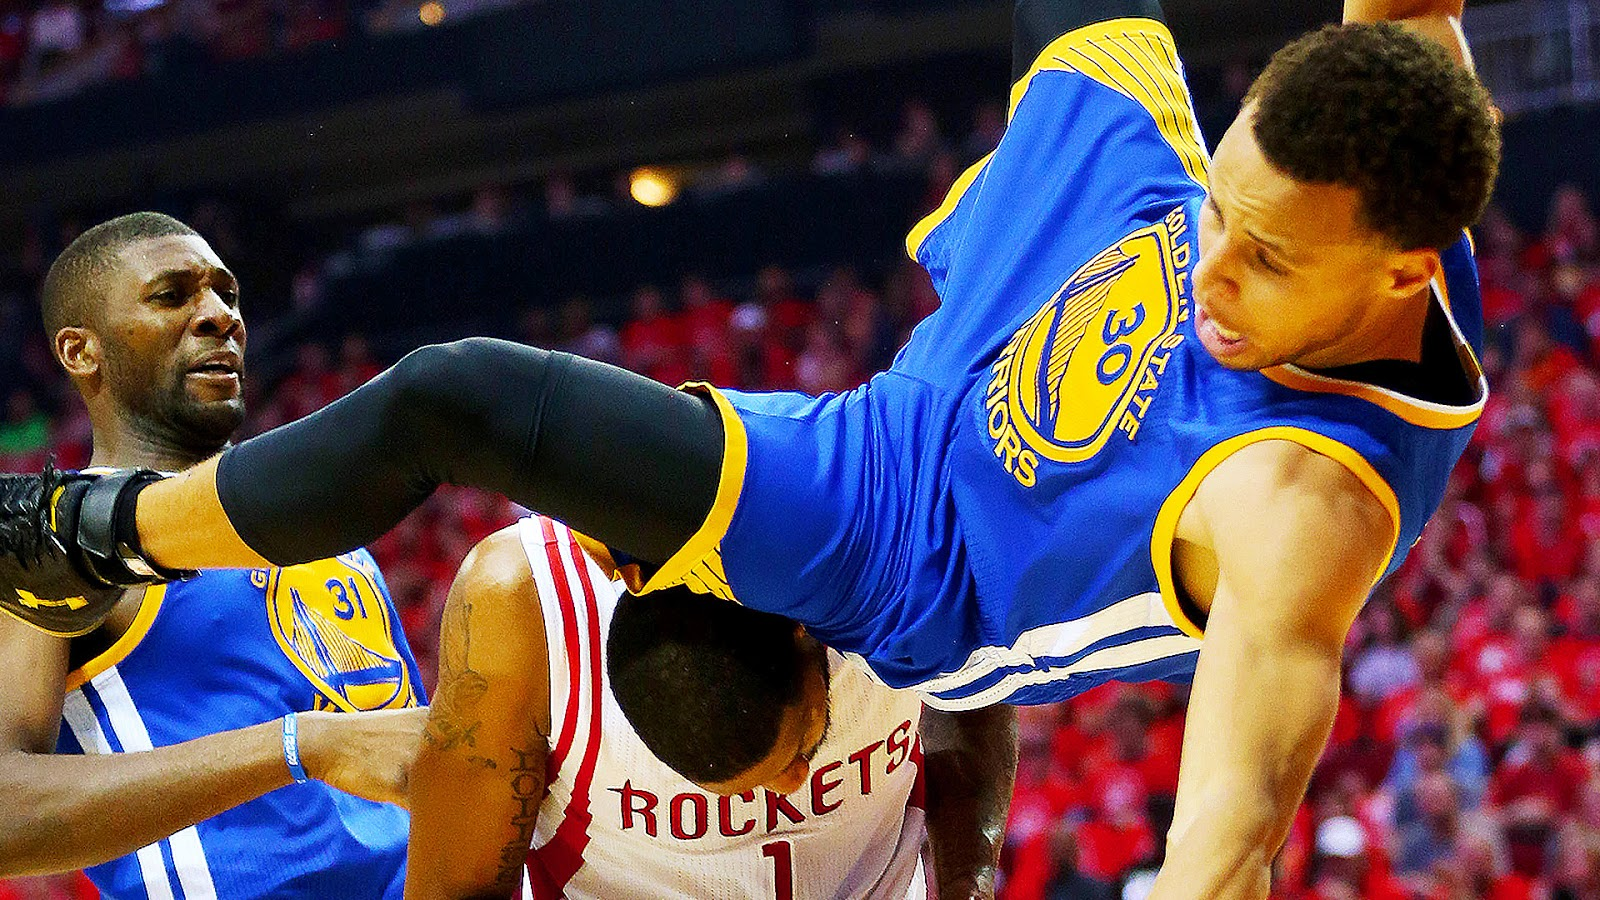 HD Stephen Curry Awesome Photo